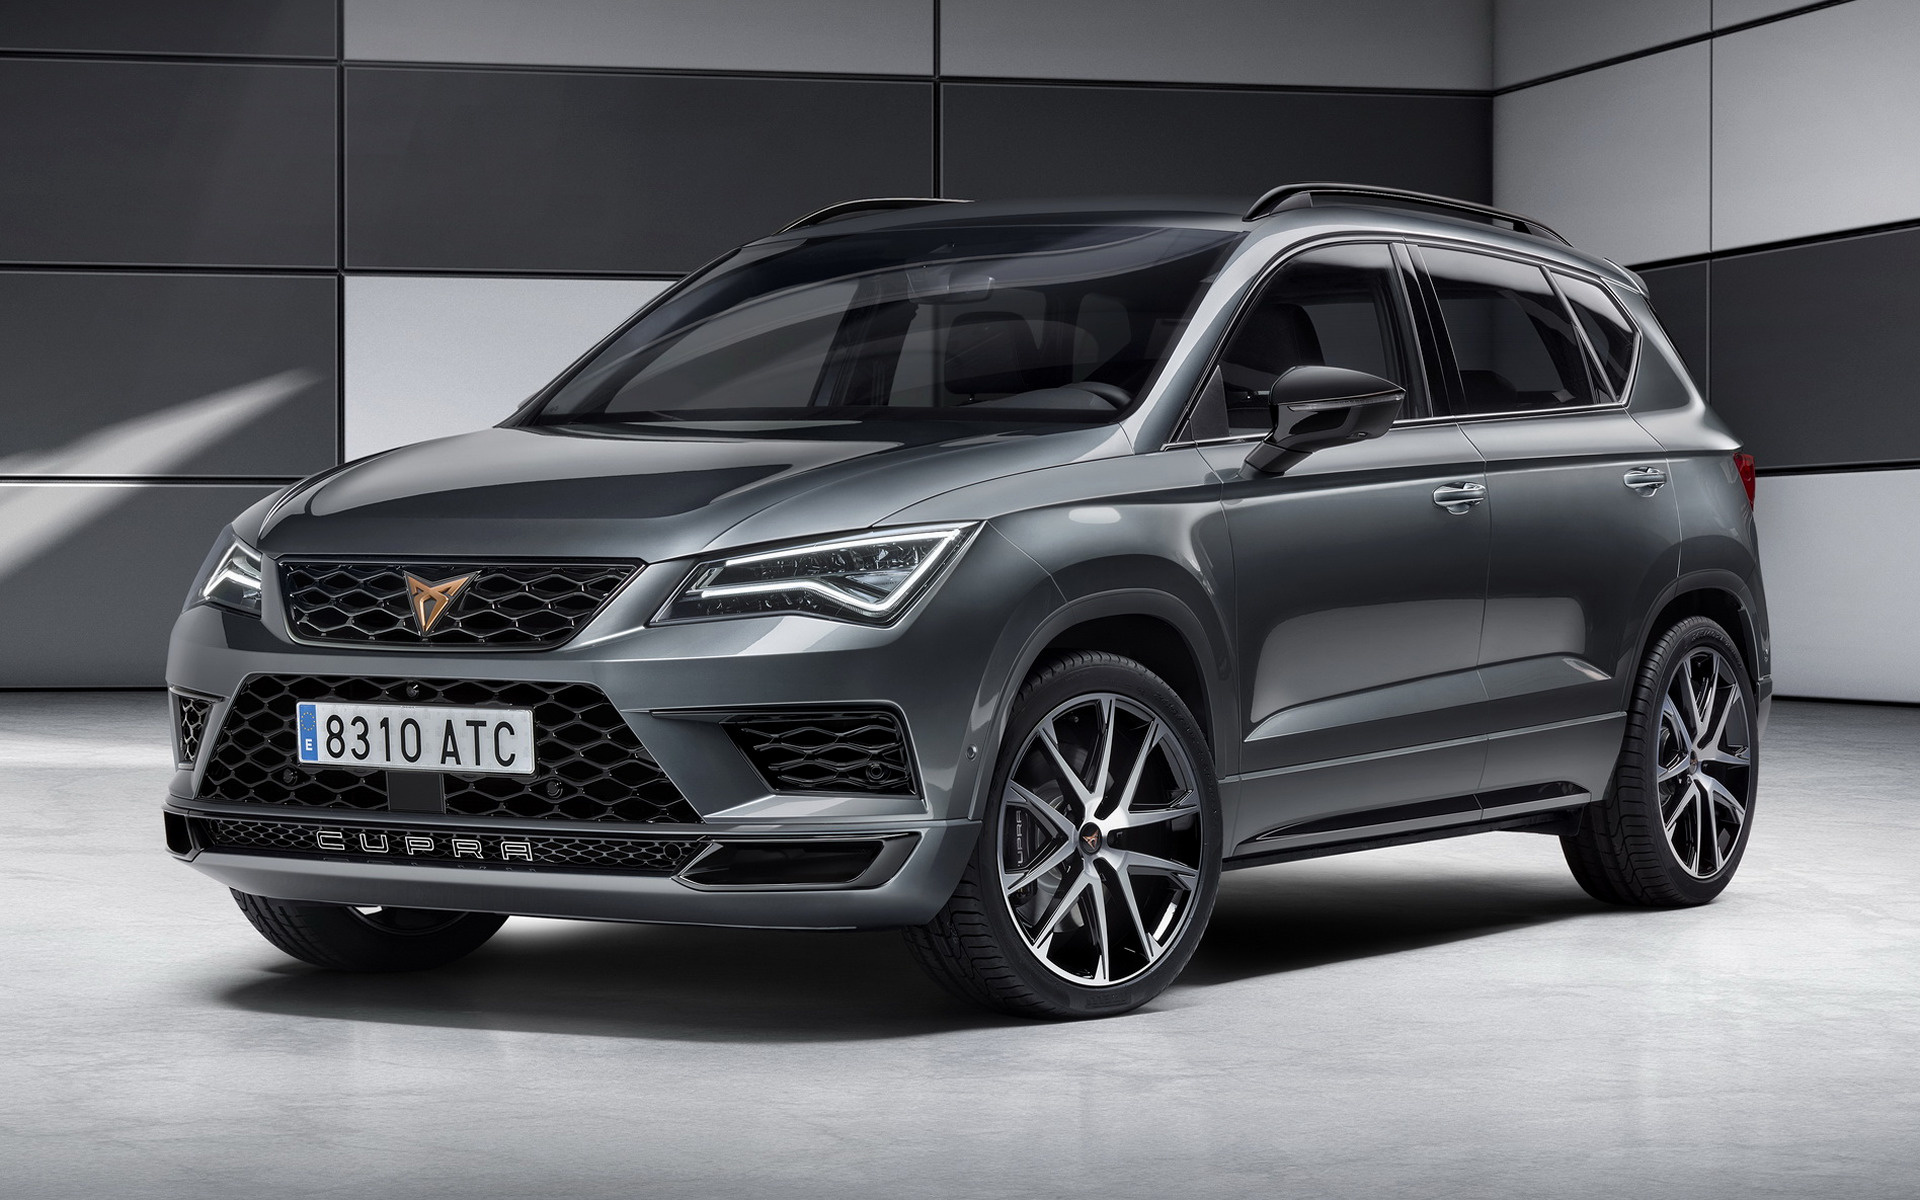 Jeep C Suv >> 2018 Cupra Ateca - Wallpapers and HD Images | Car Pixel